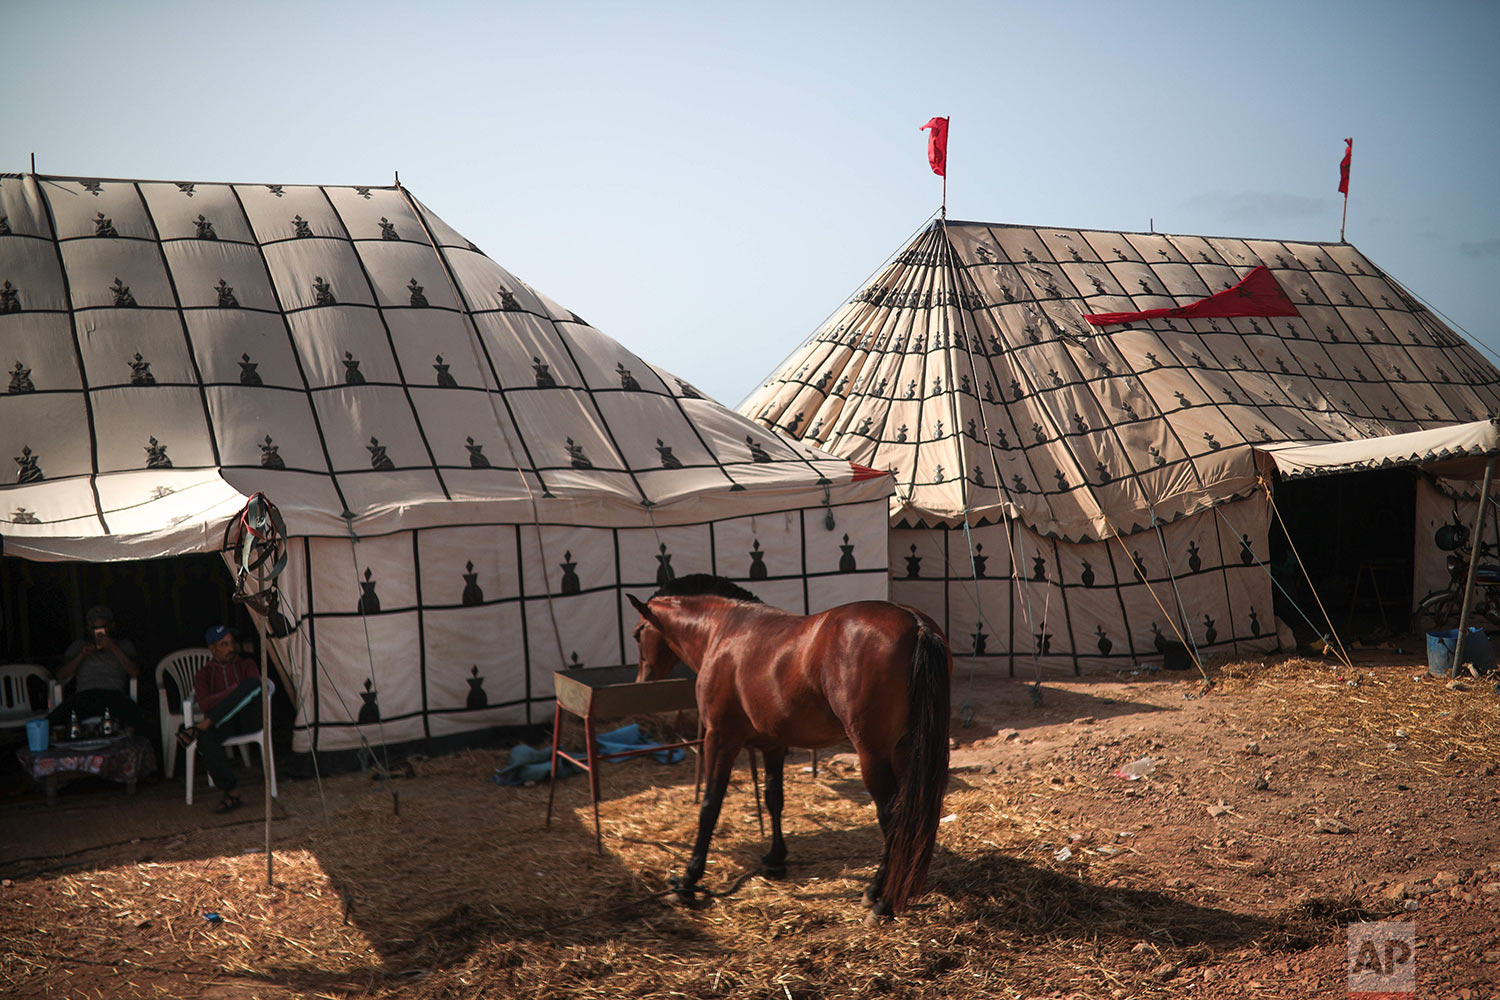 A horse feeds at a tent before it is prepared to take part in Tabourida, a traditional horse riding show also known as Fantasia, in the coastal town of El Jadida, Morocco, July 25, 2019. (AP Photo/Mosa'ab Elshamy)